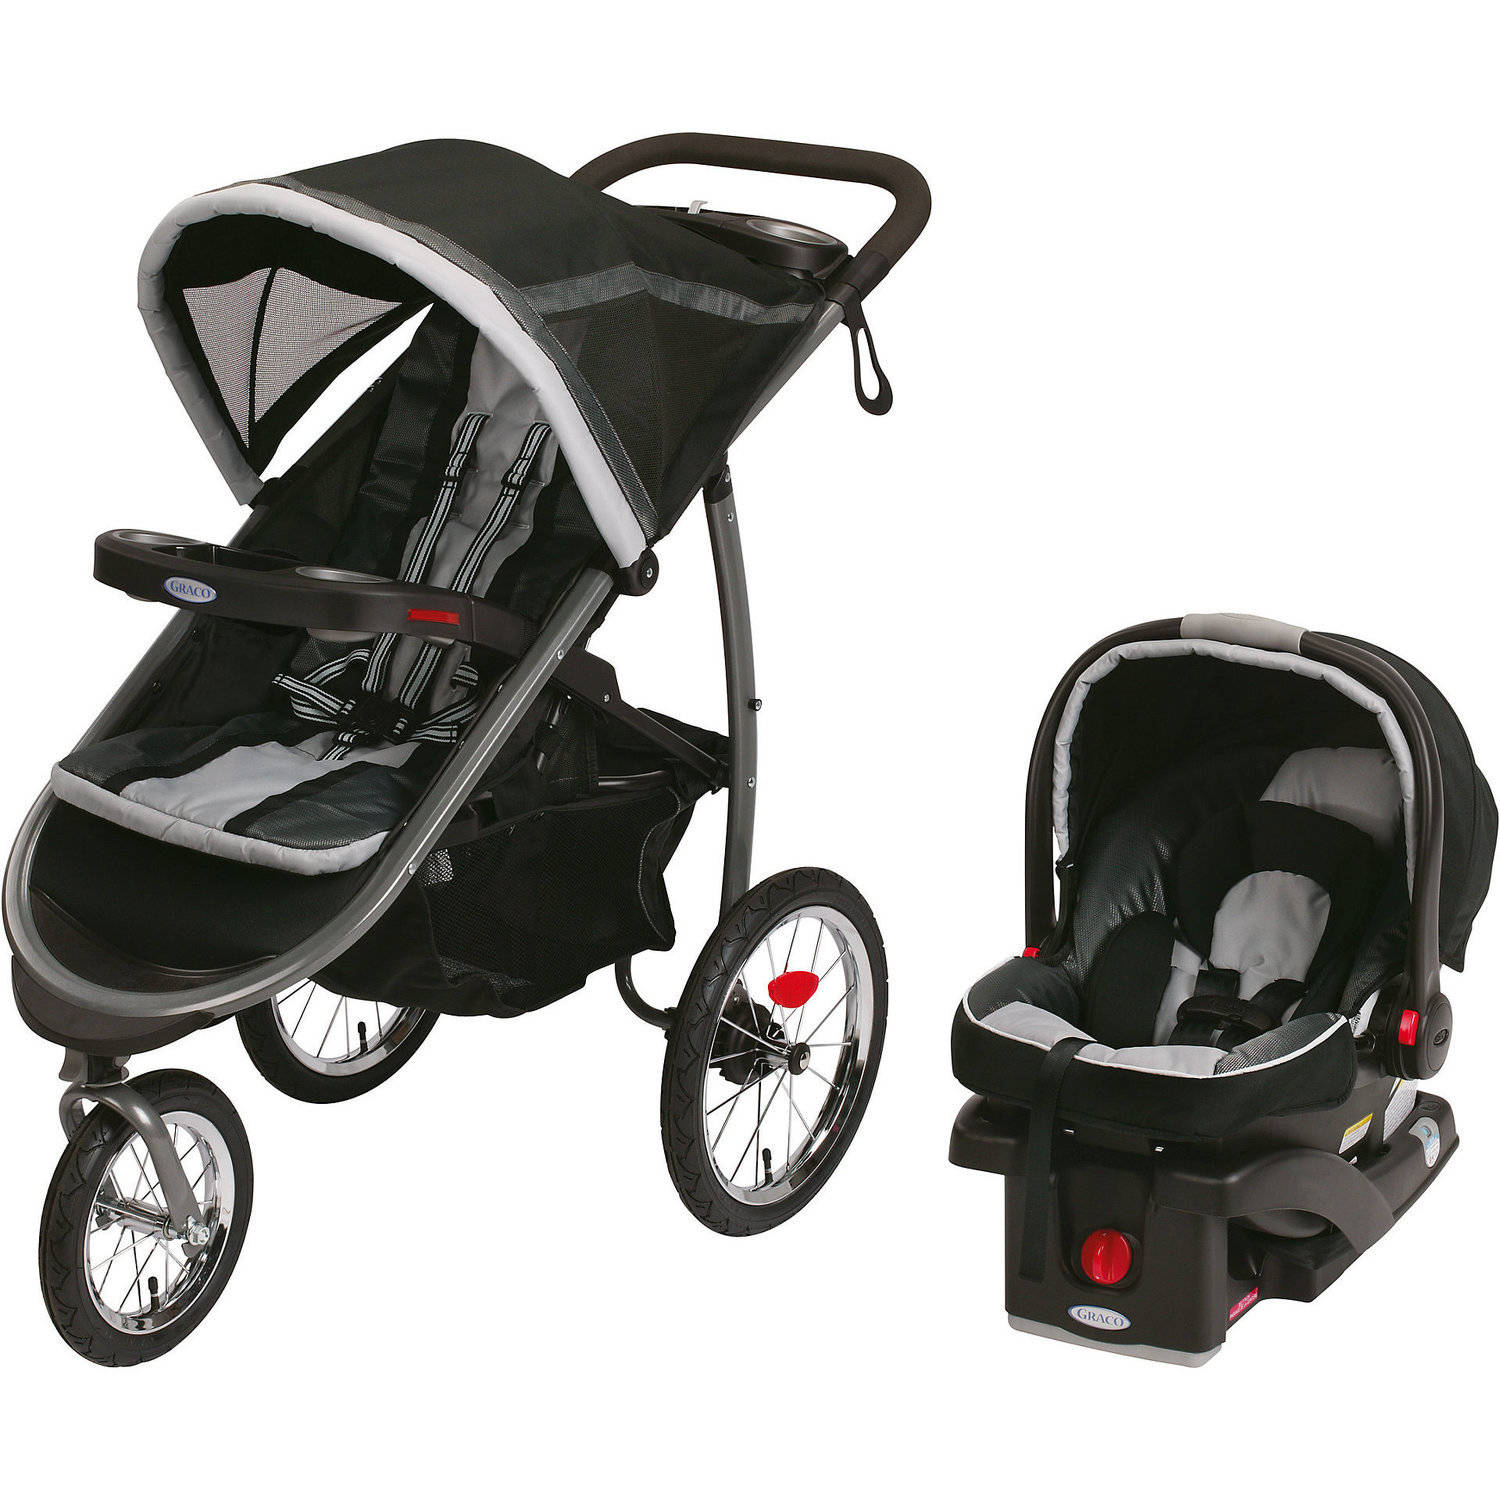 Graco FastAction Fold Jogger Click Connect Travel System Jogging Stroller Gotham